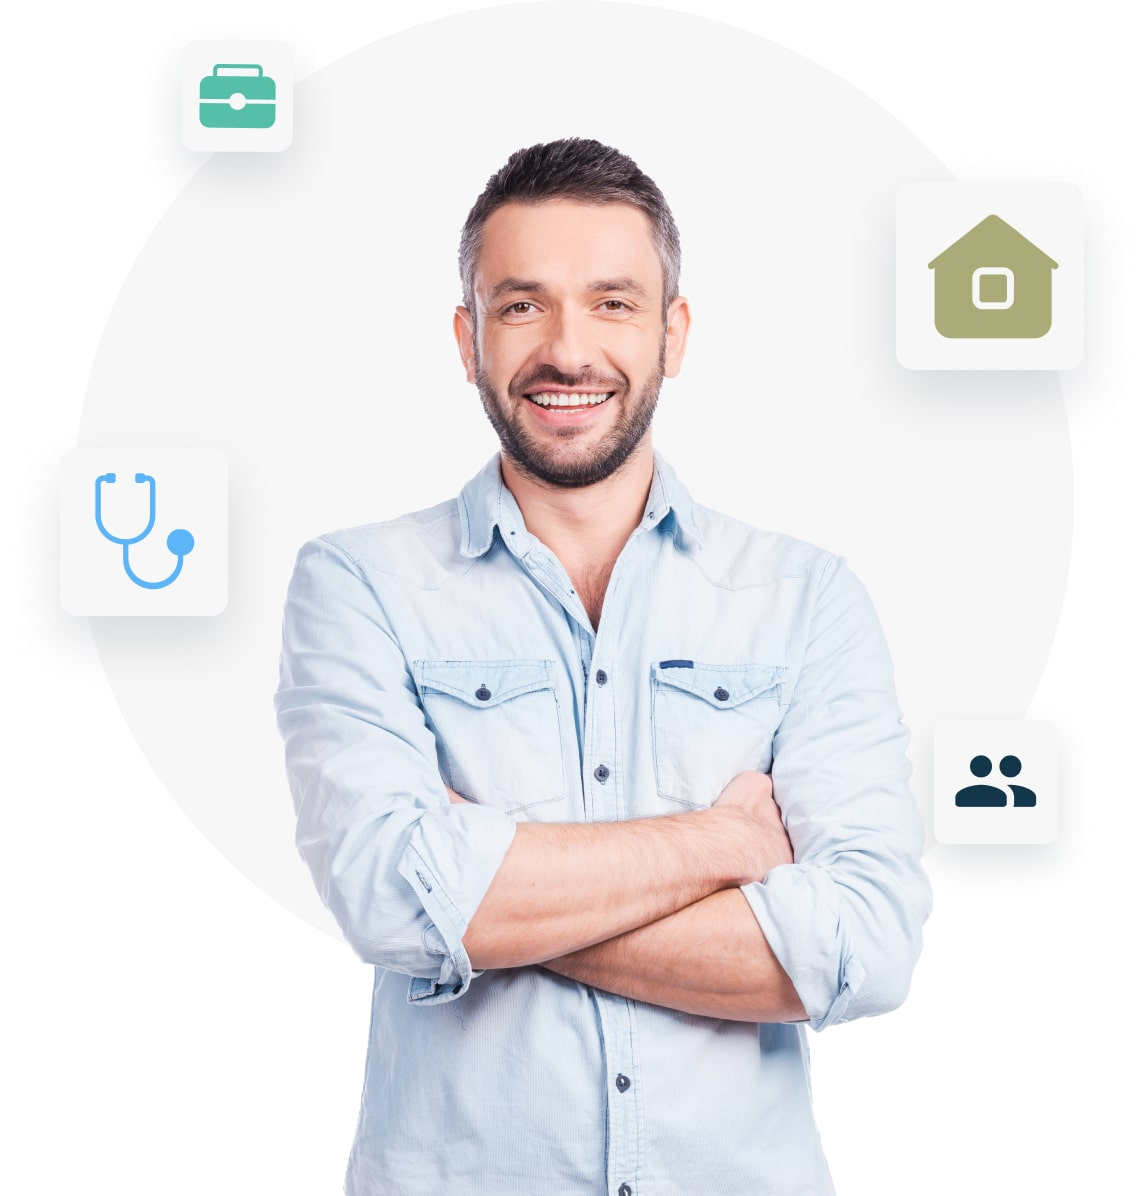 Best life health and business insurance in New Zealand